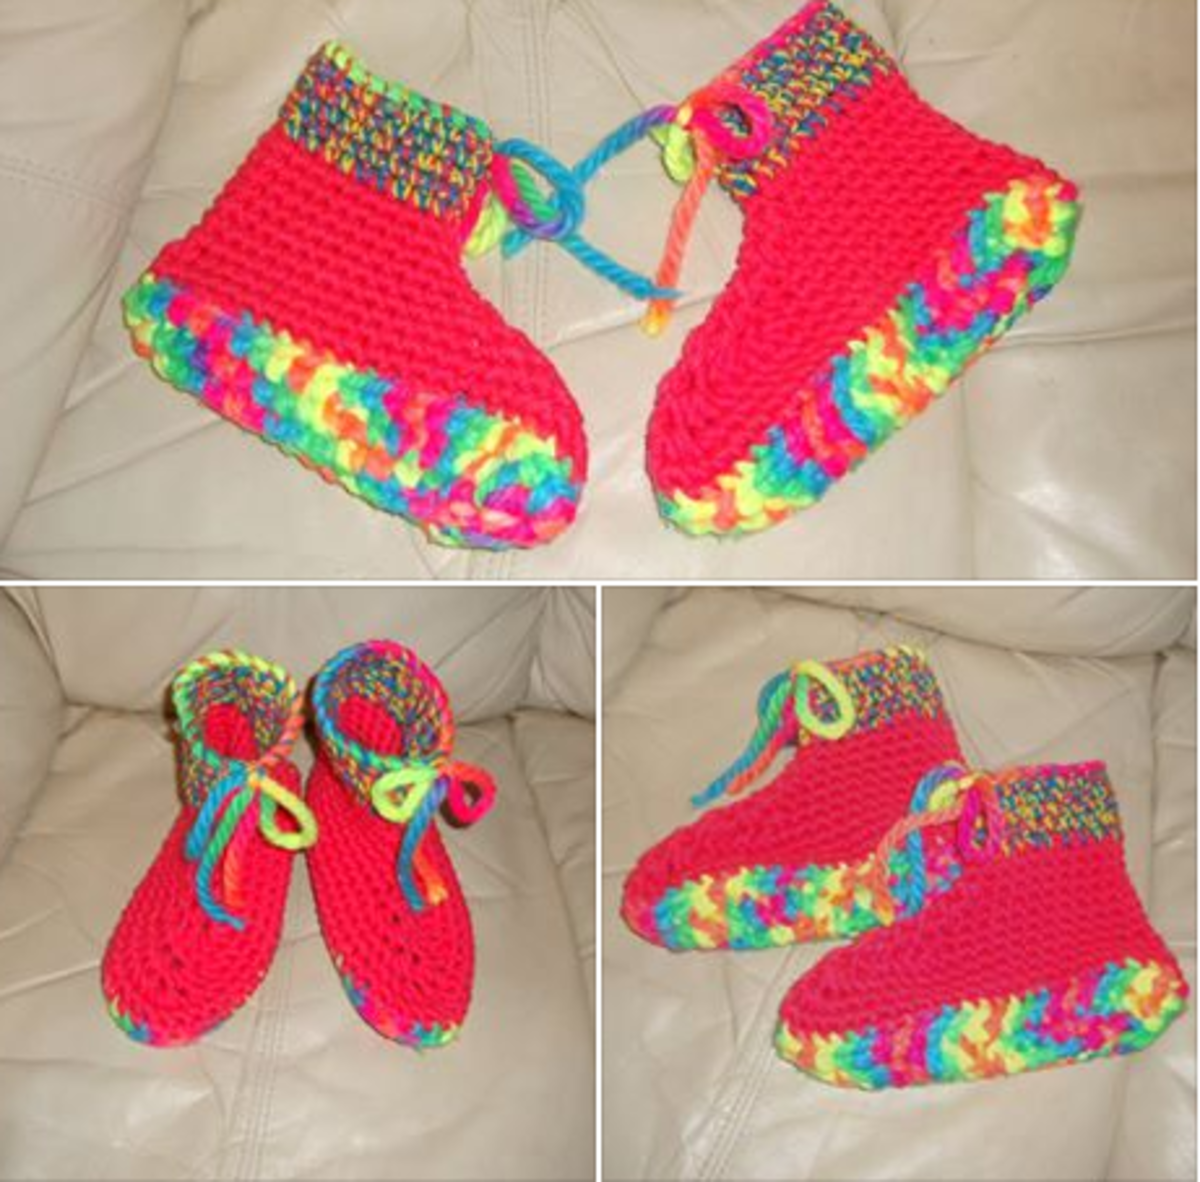 A super bulky yarn was used for the soles.